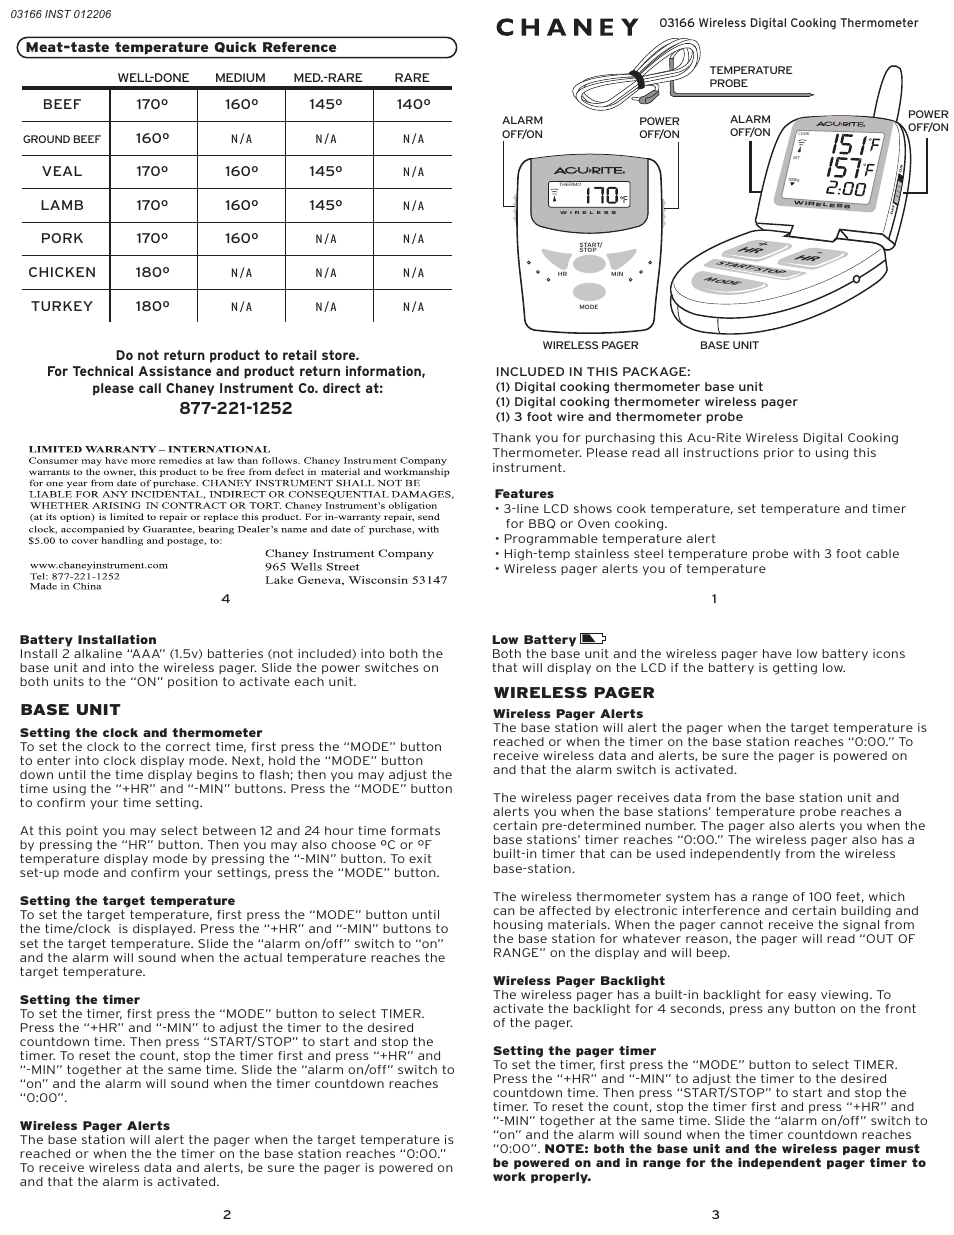 Acurite 03166 Thermometer User Manual Manual Guide